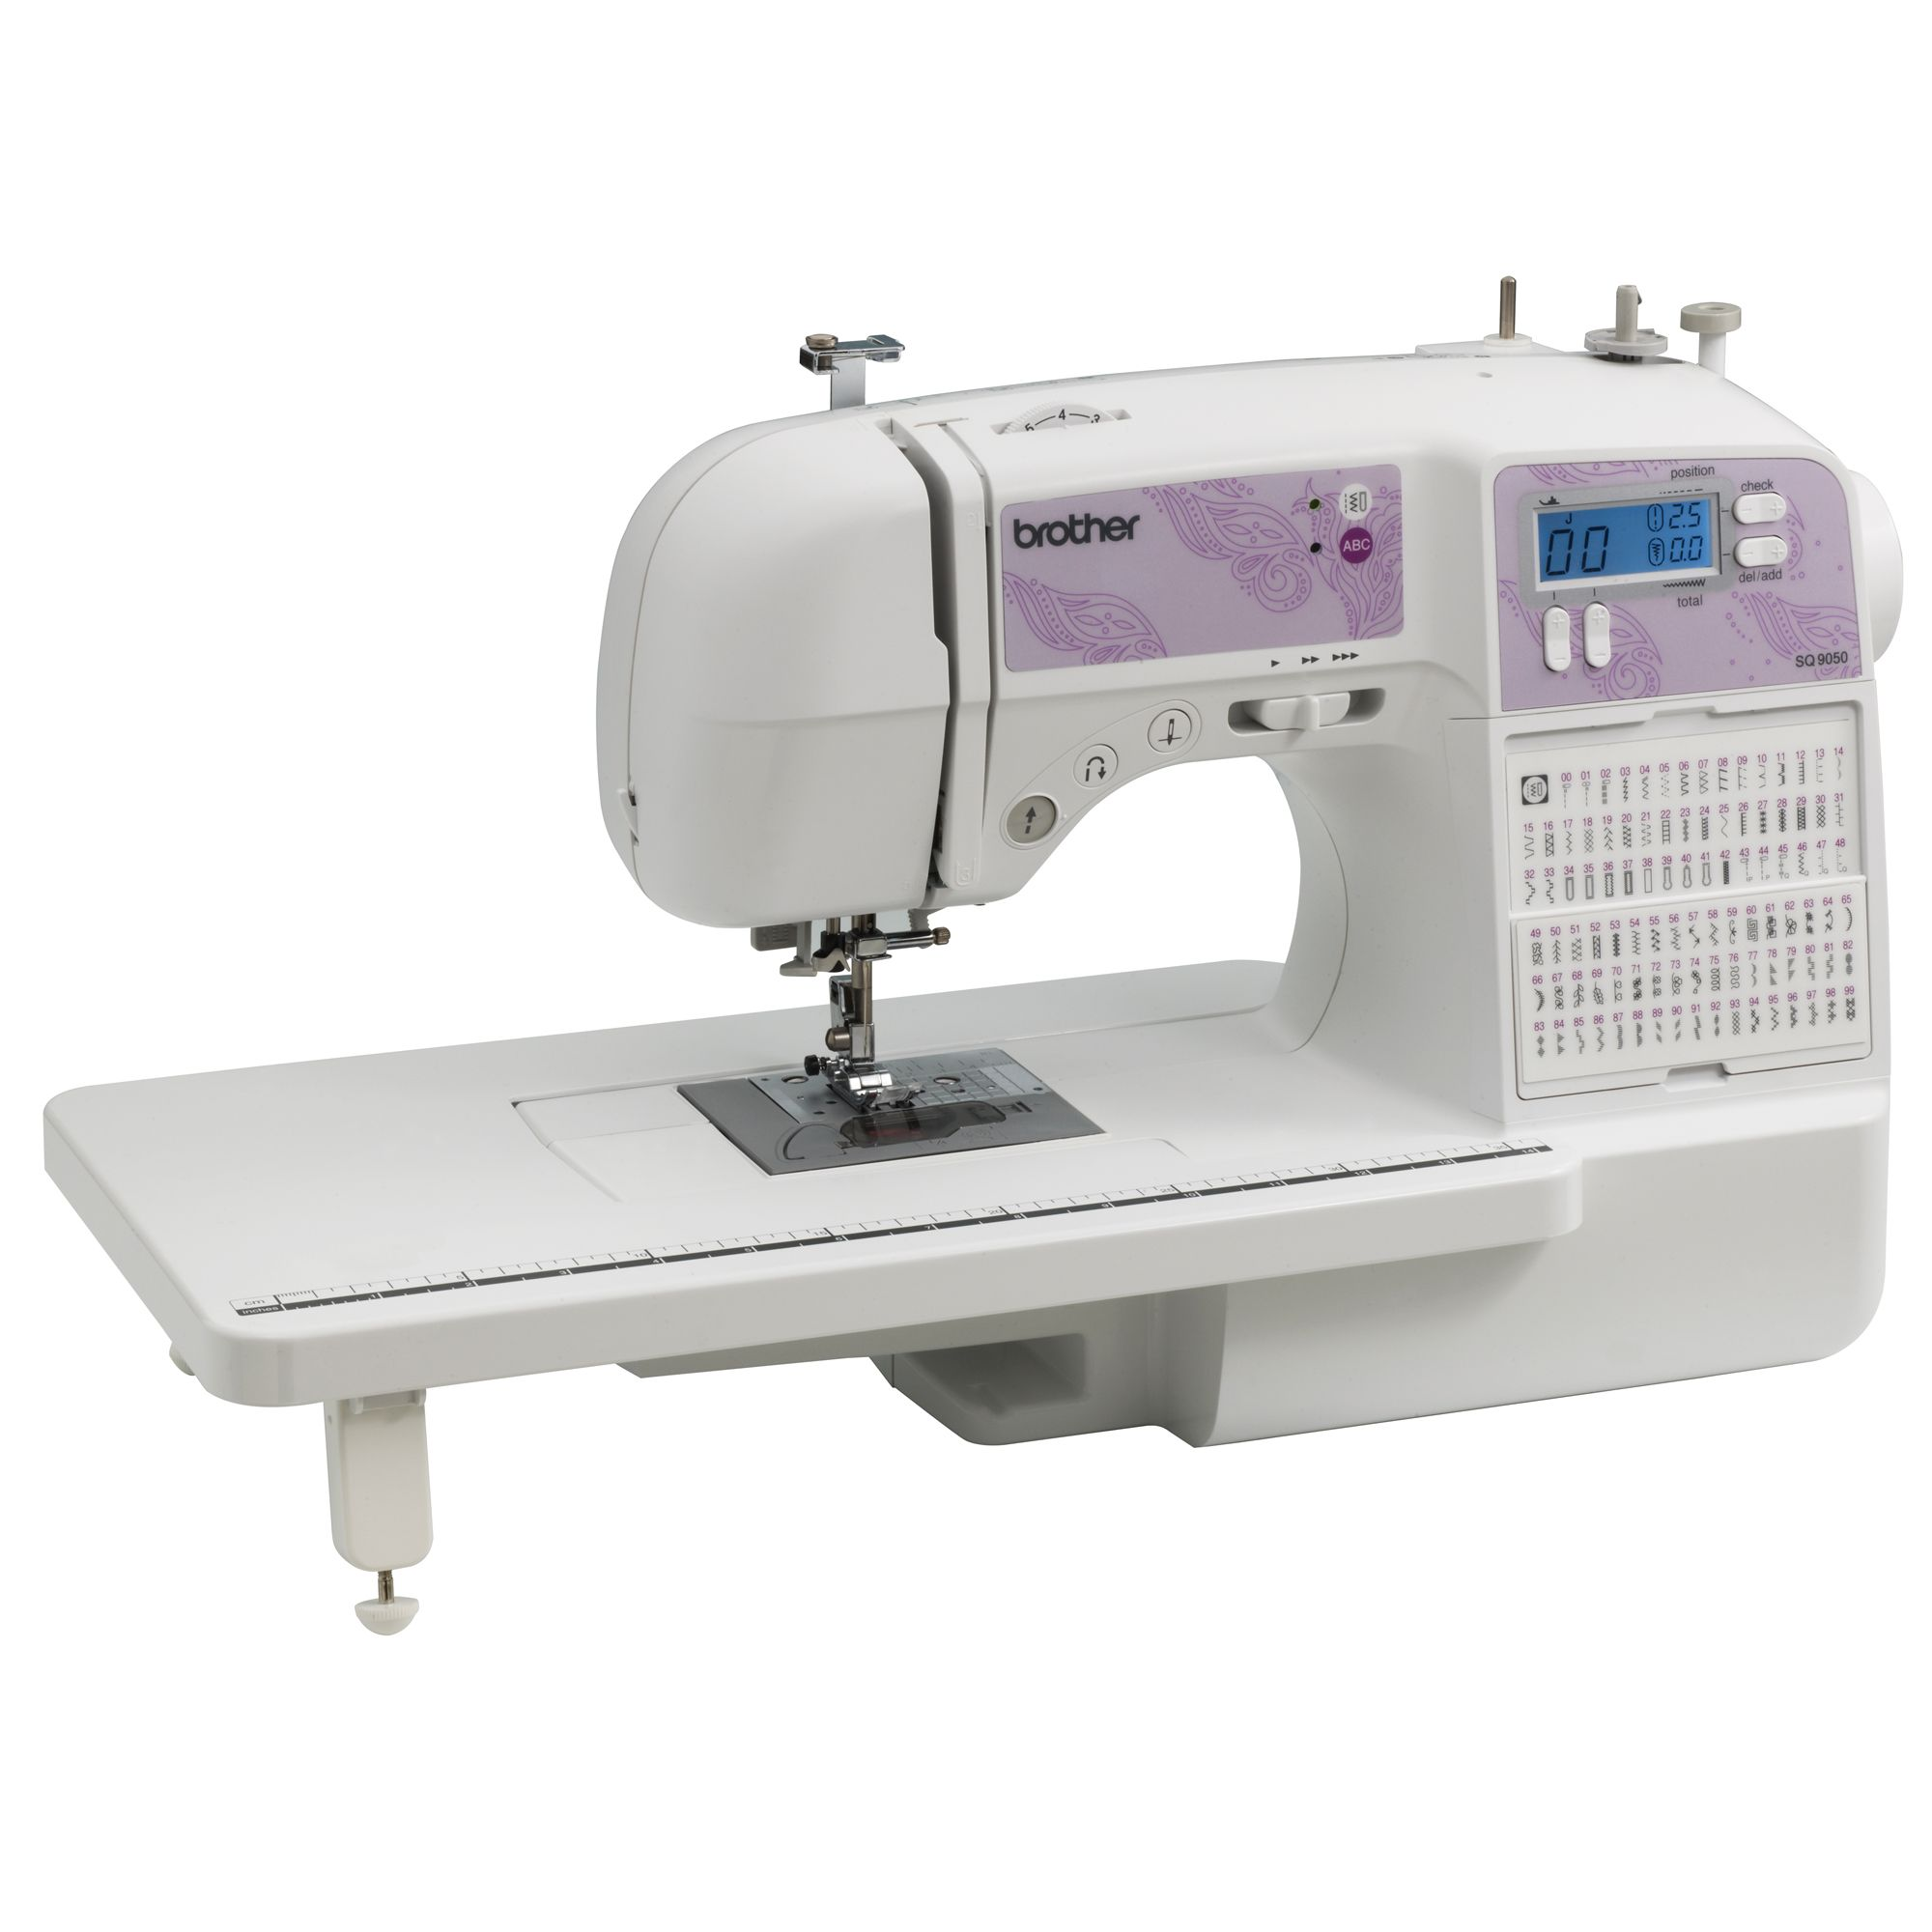 Brother Sq9050 Computerized Sewing And Quilting Machine At Walmart Ca Sewing Machine Sewing Machines Best Sewing Machine Reviews